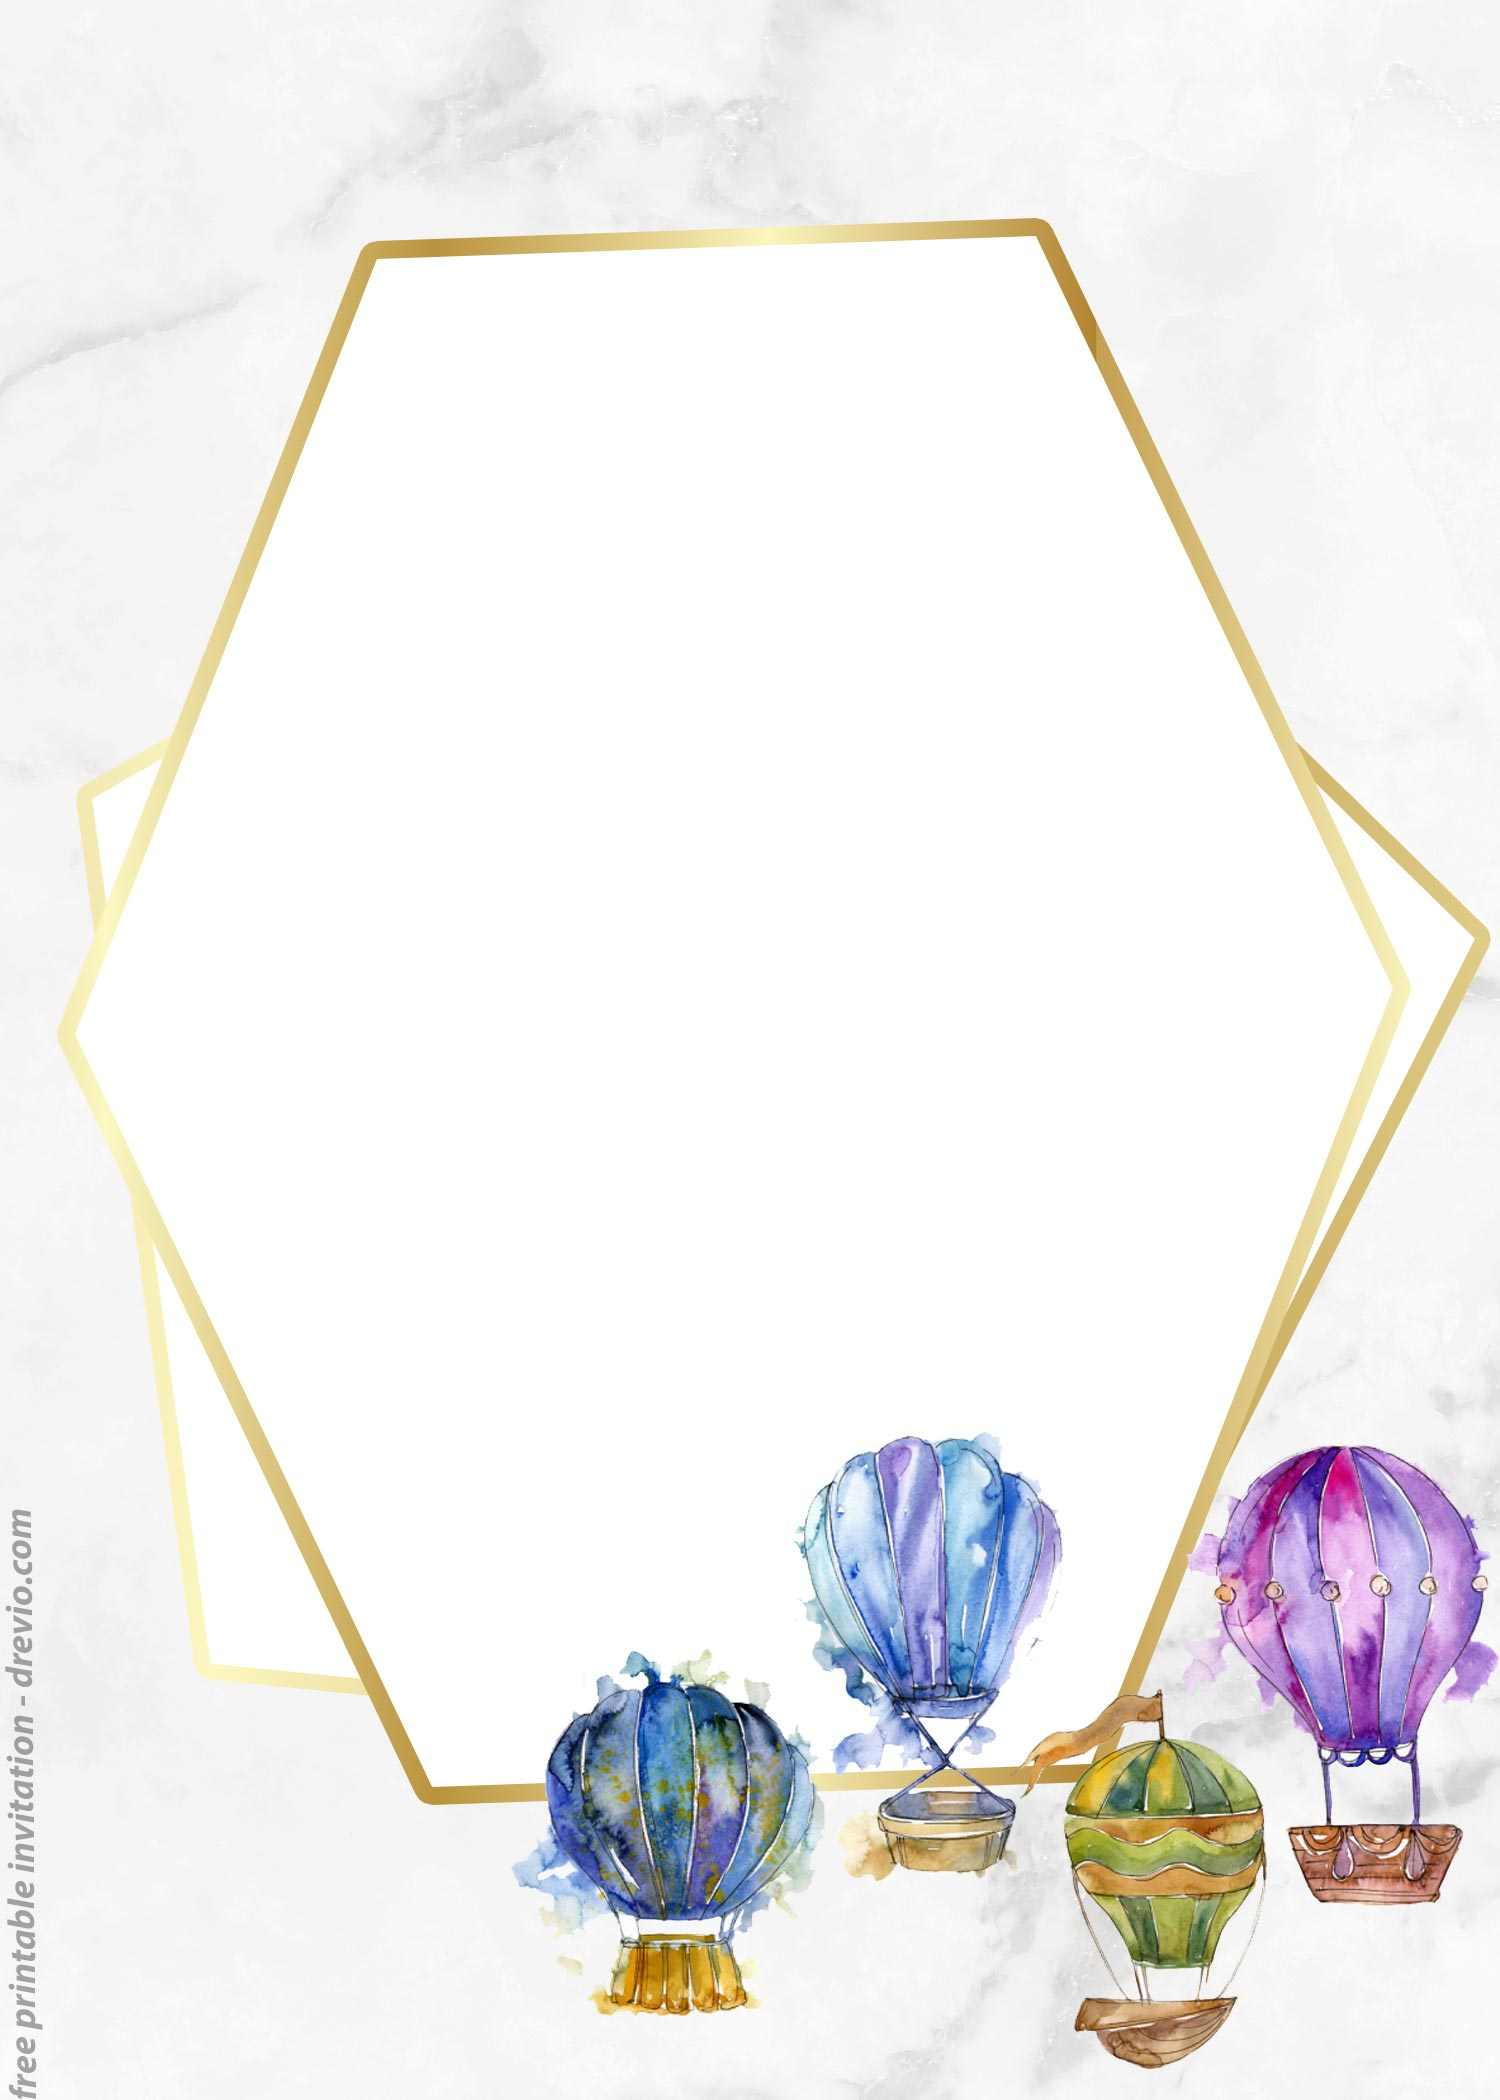 graphic about Oh the Places You'll Go Balloon Printable Template referred to as Cost-free Watercolor Incredibly hot Air Balloon Traditional Invitation Templates